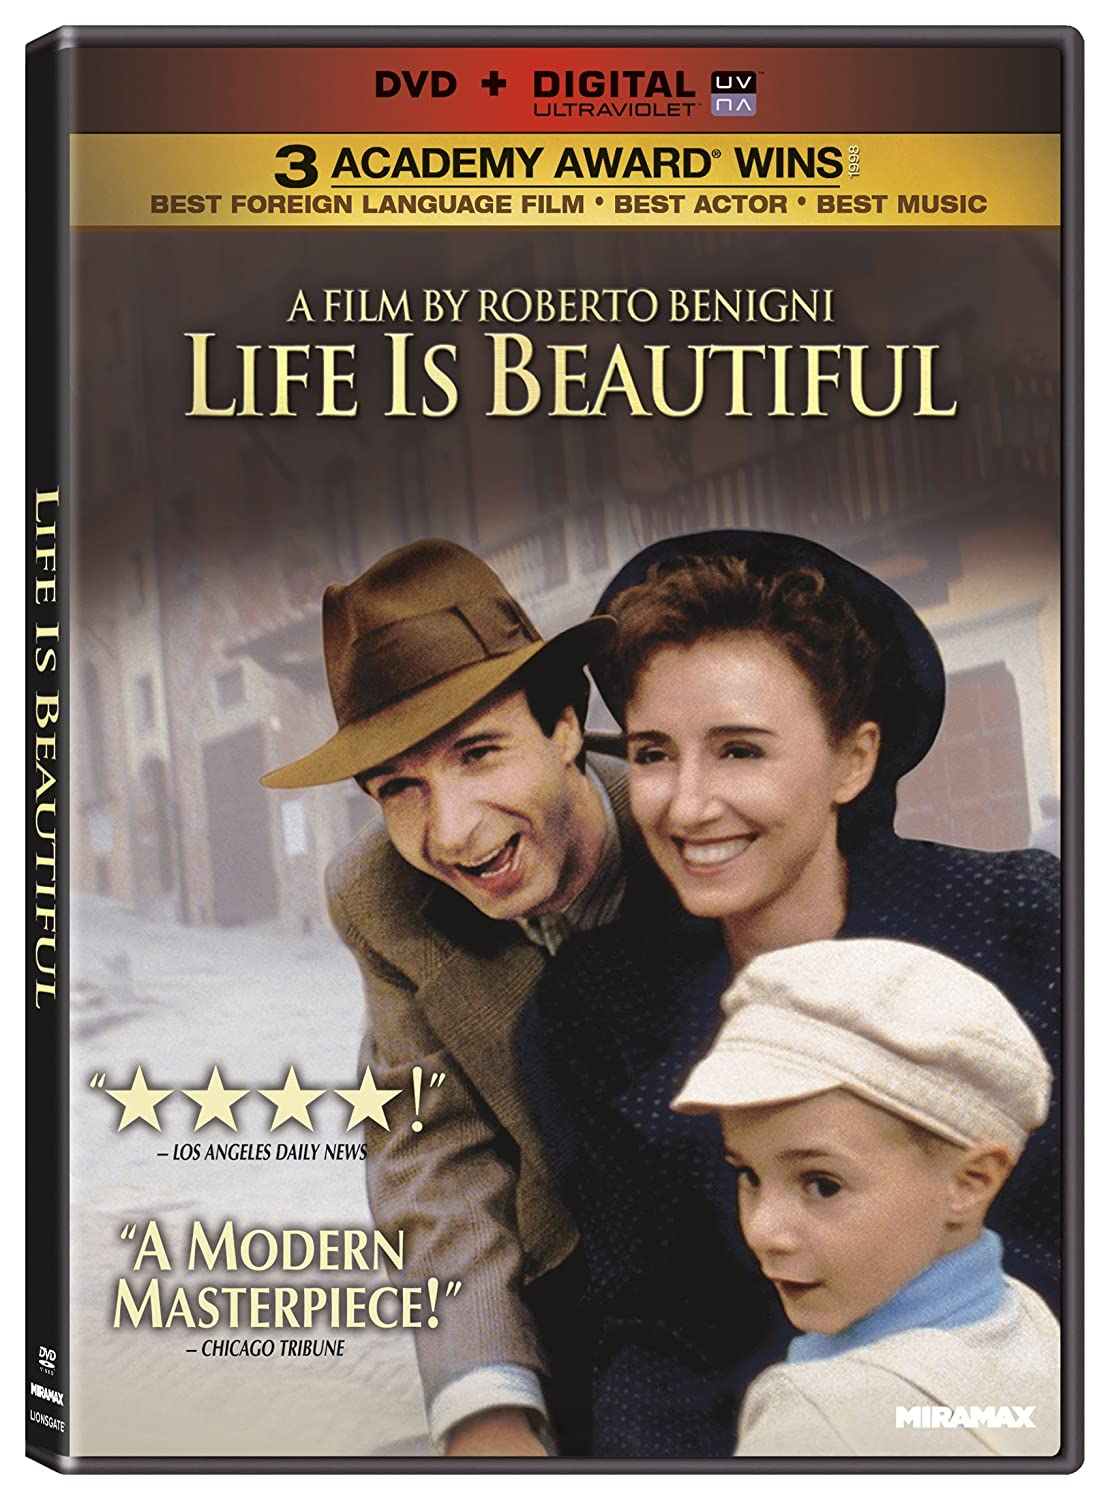 an analysis of life is beautiful a holocaust film Reel classics commentary reviews movie reviews life is beautiful is a film best watched there are those who have labeled it a holocaust.